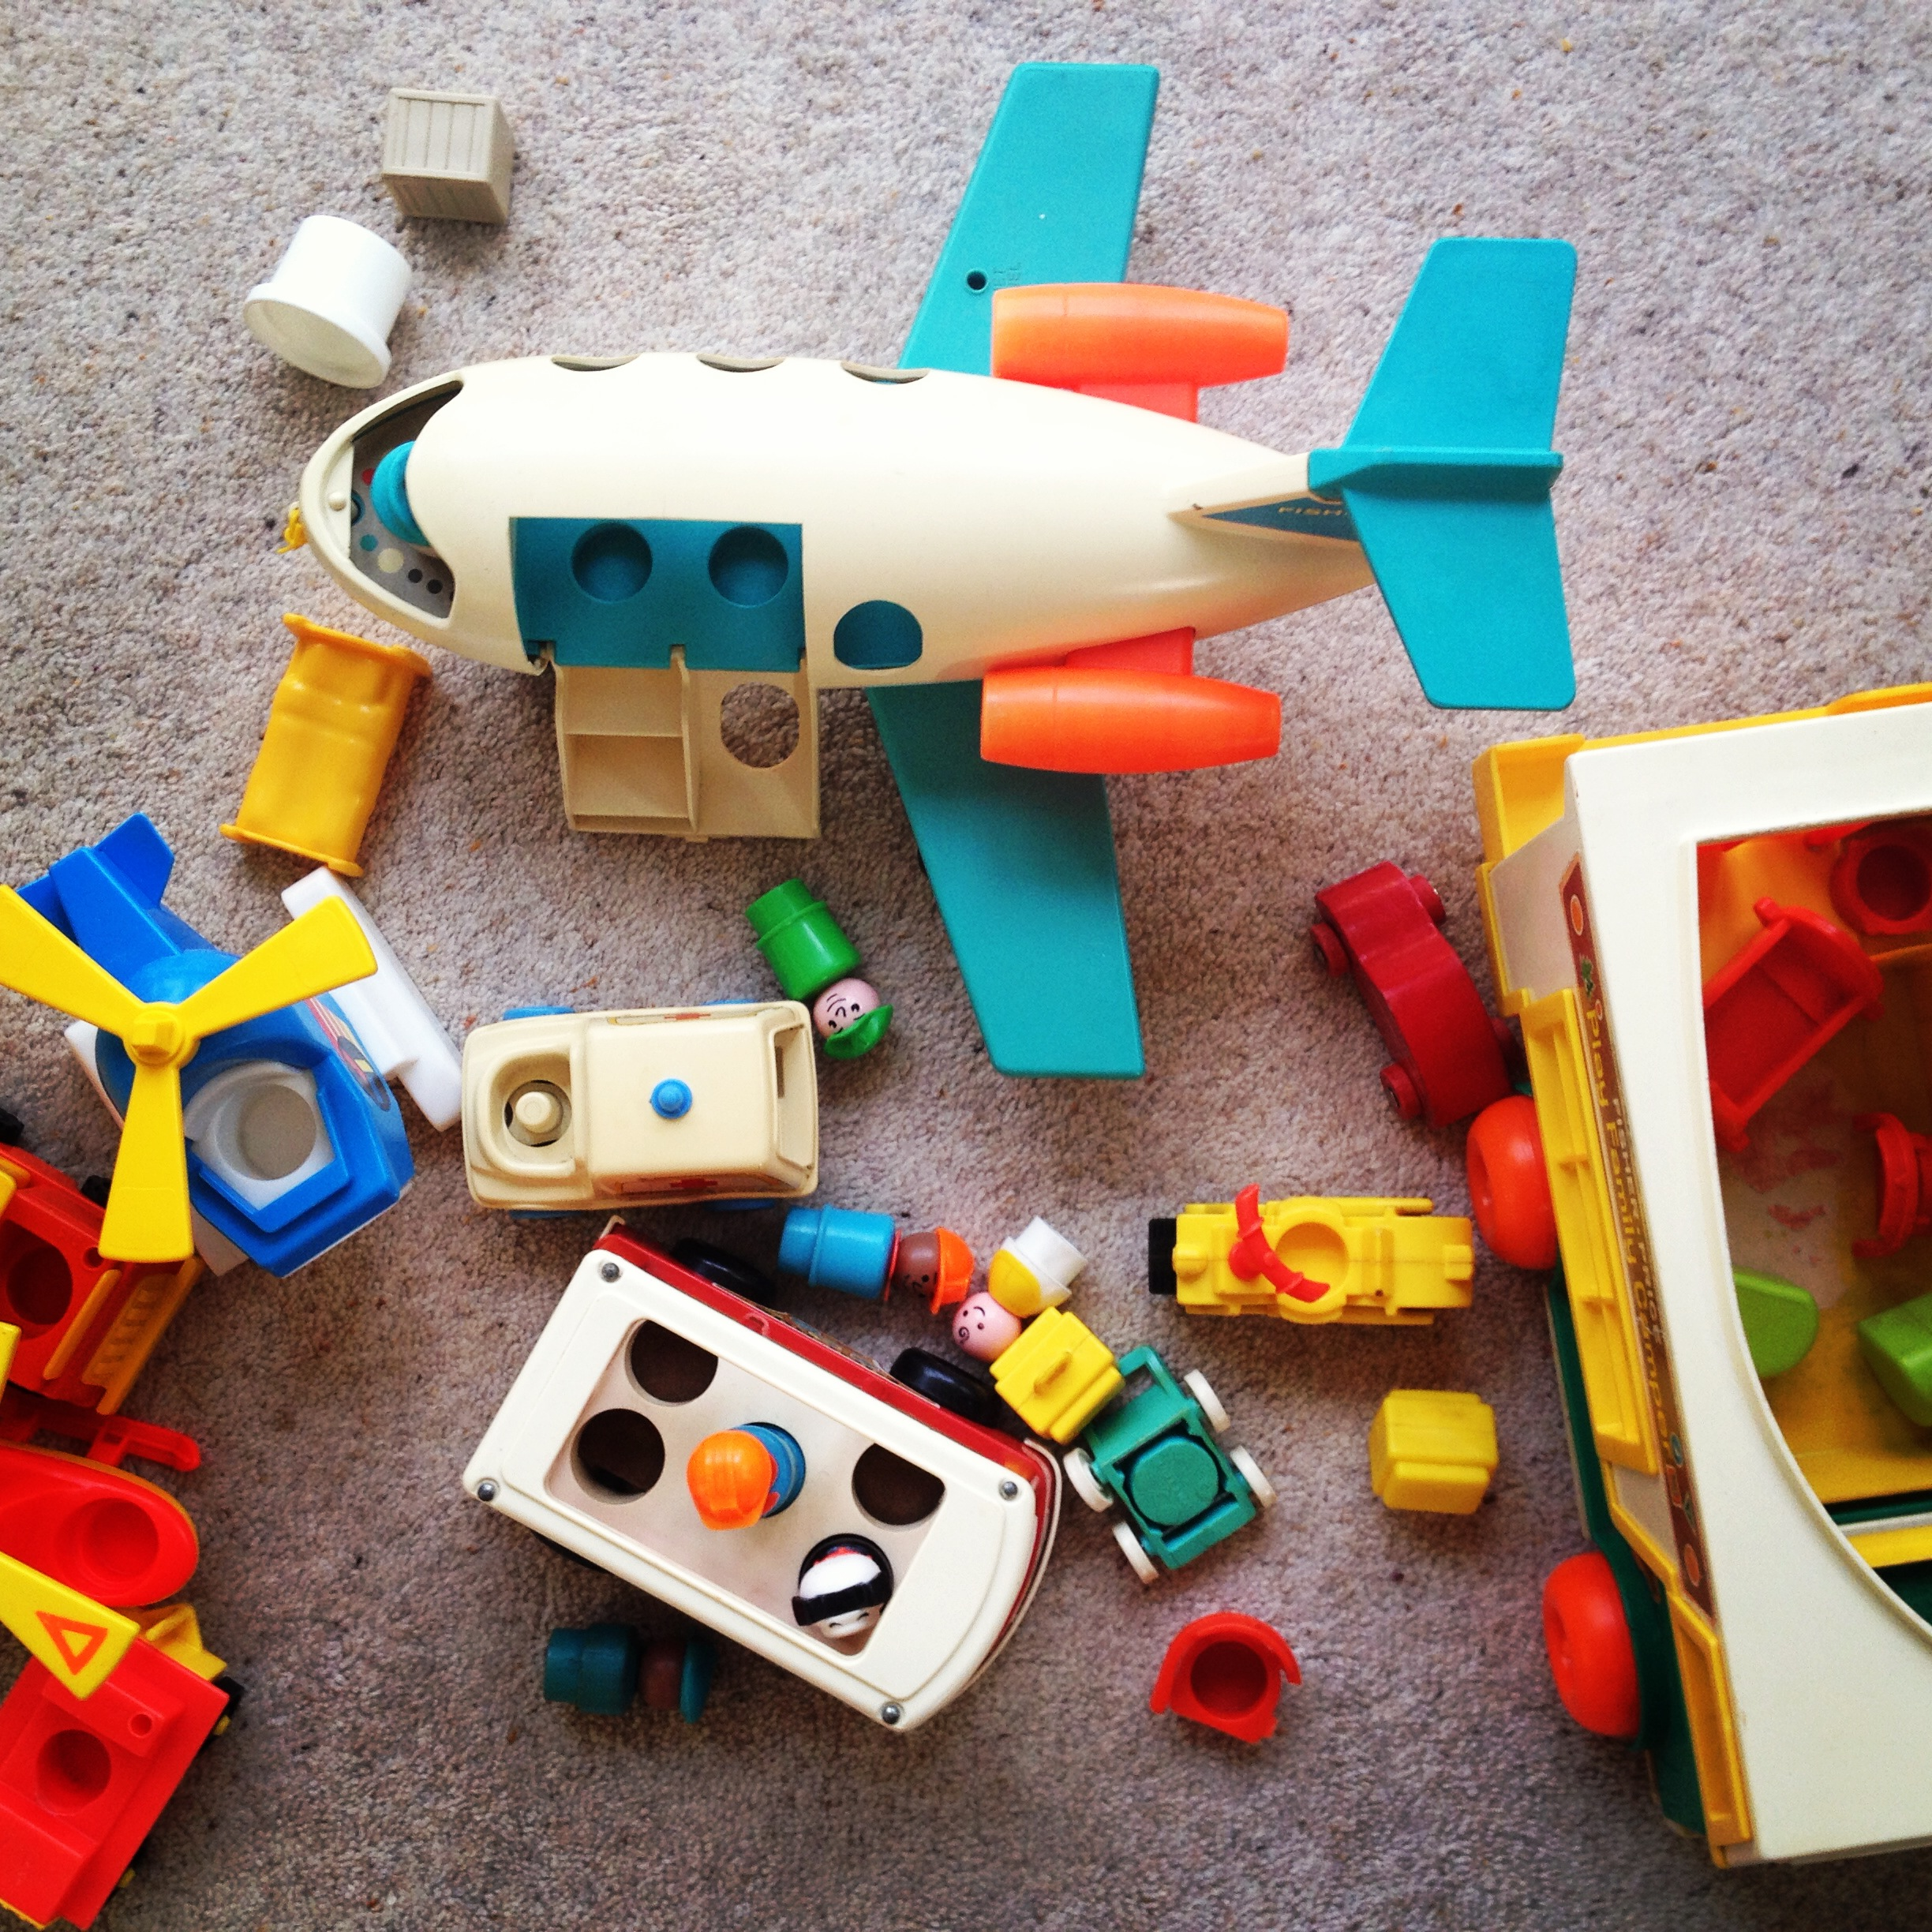 Name your Fisher Price vintage childhood toys